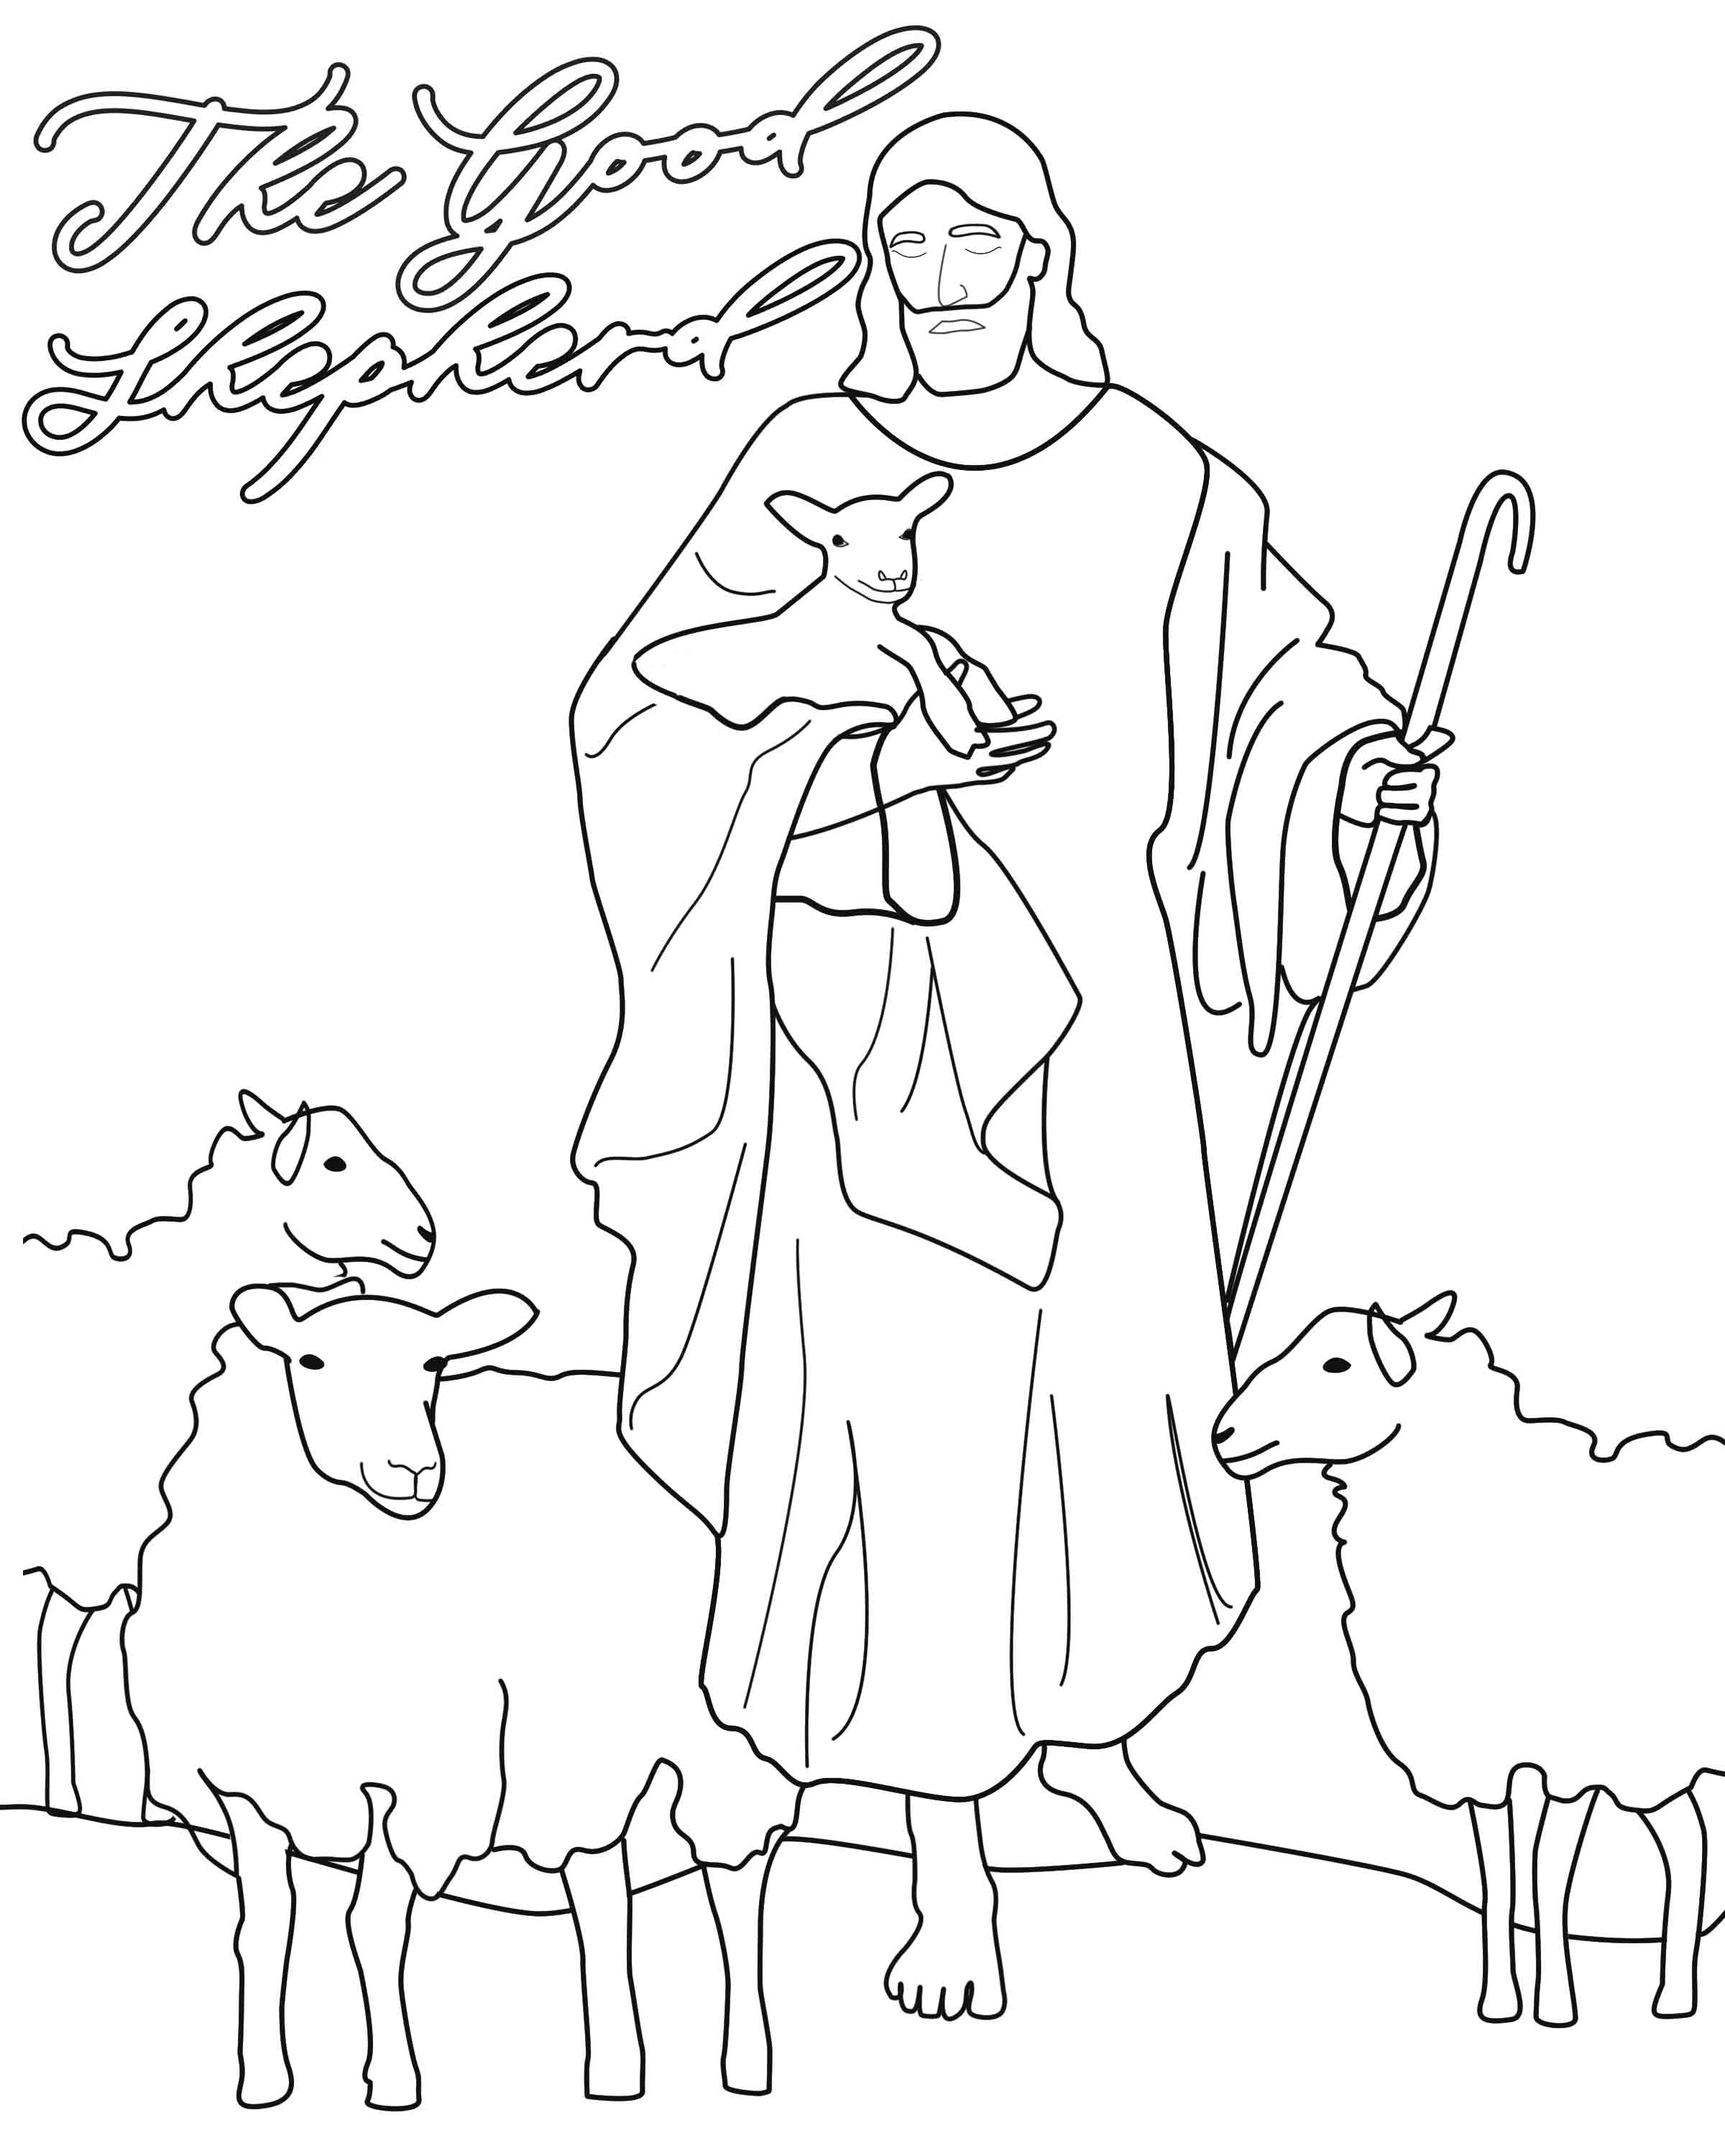 The Good Shepherd Story Come Follow Me April 29 May 5th